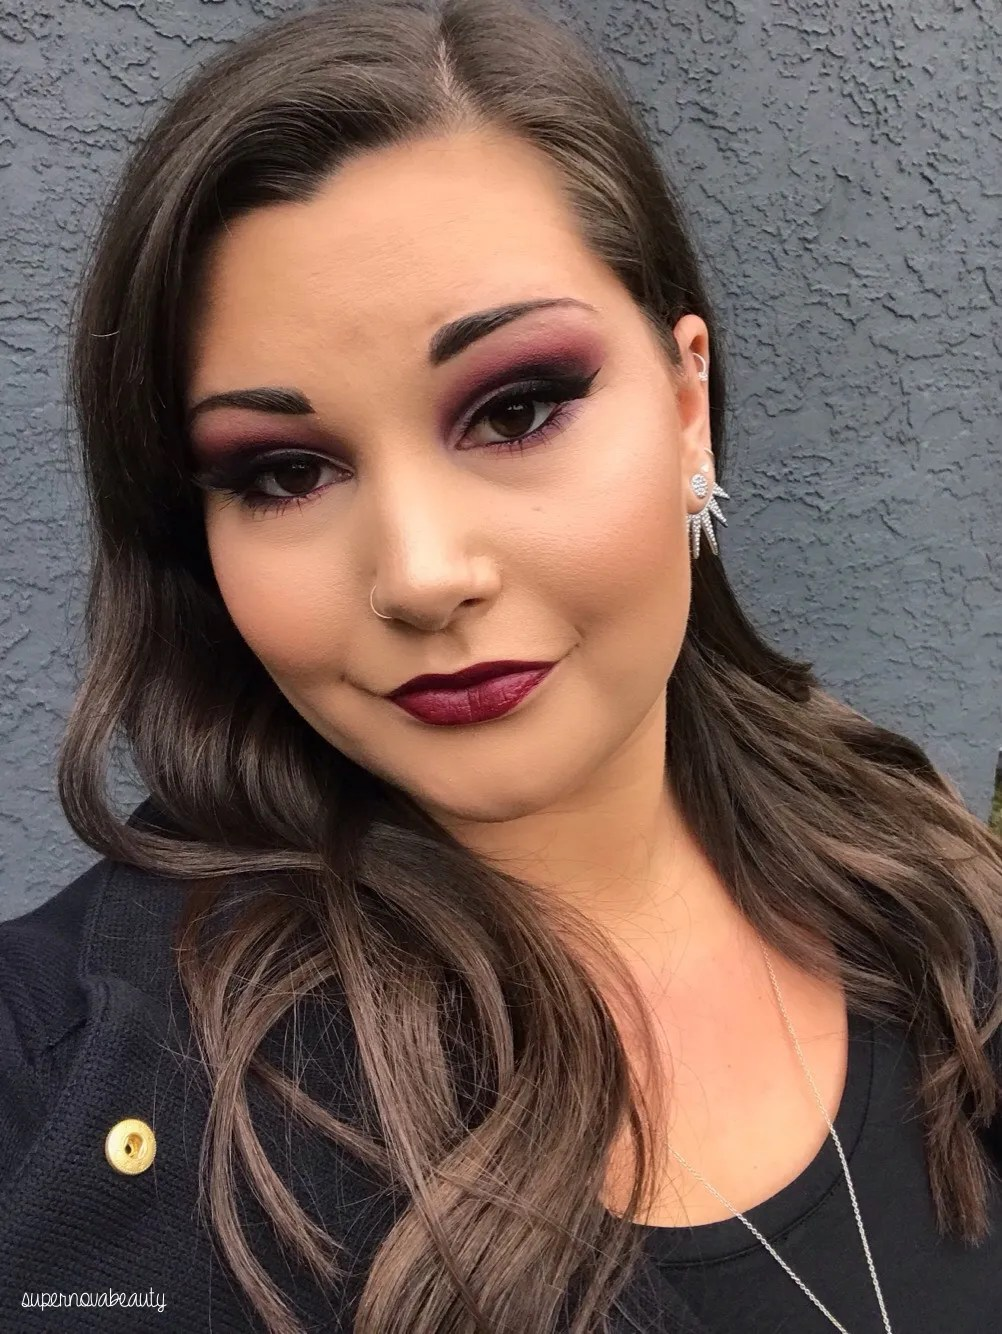 How to wear Vampy Lipstick Supernovabeauty